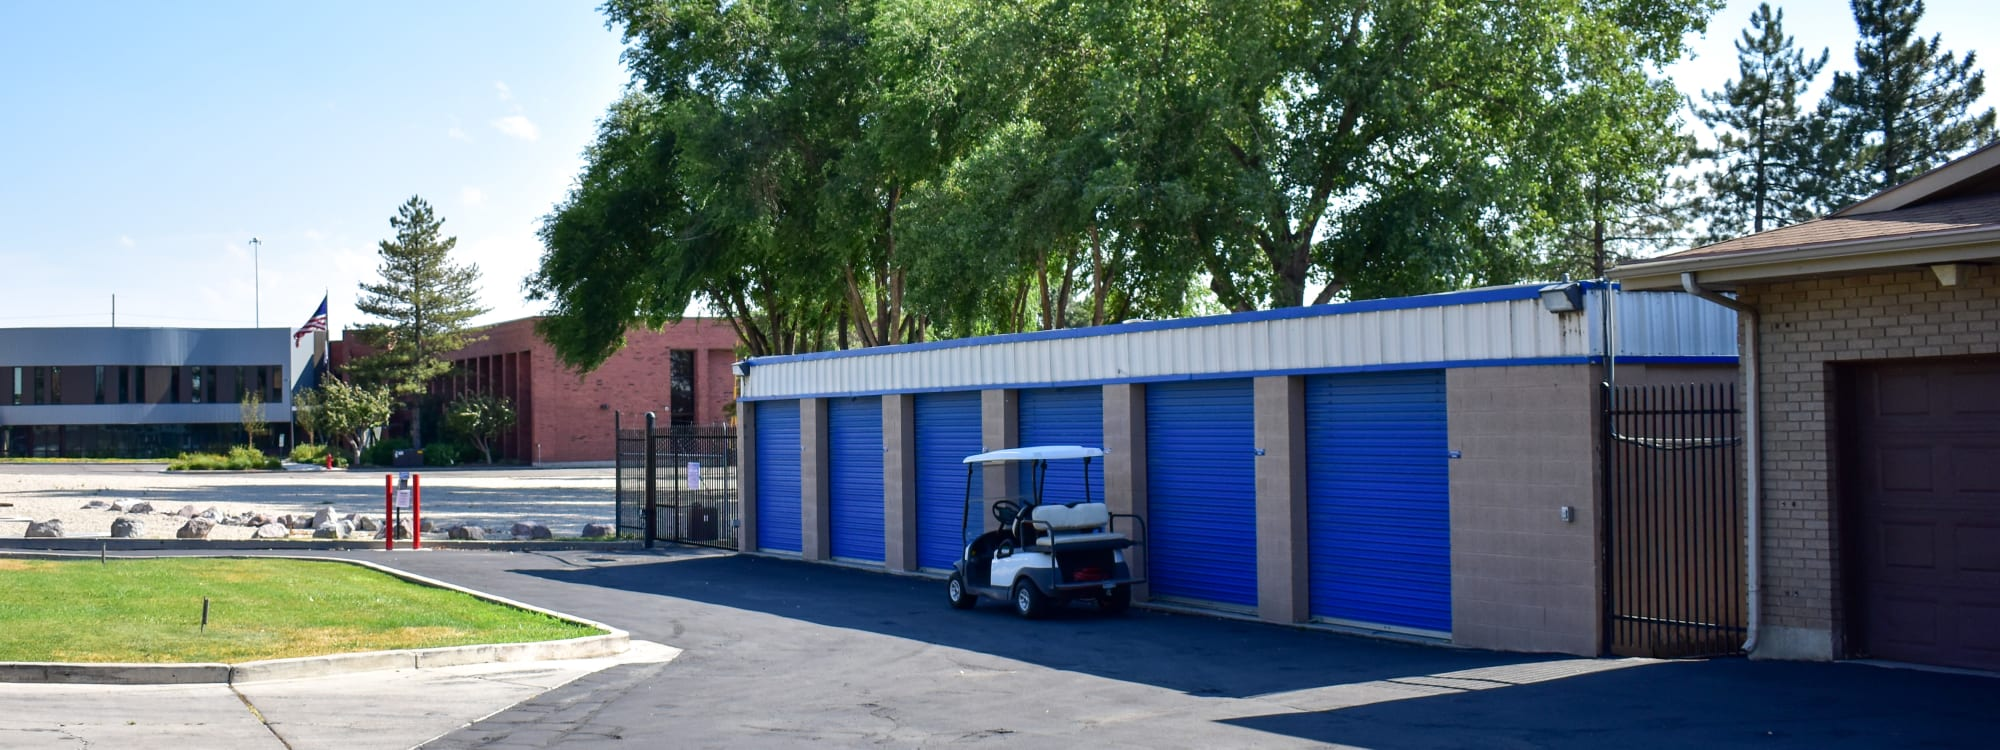 Self storage options at STOR-N-LOCK Self Storage in Sandy, Utah